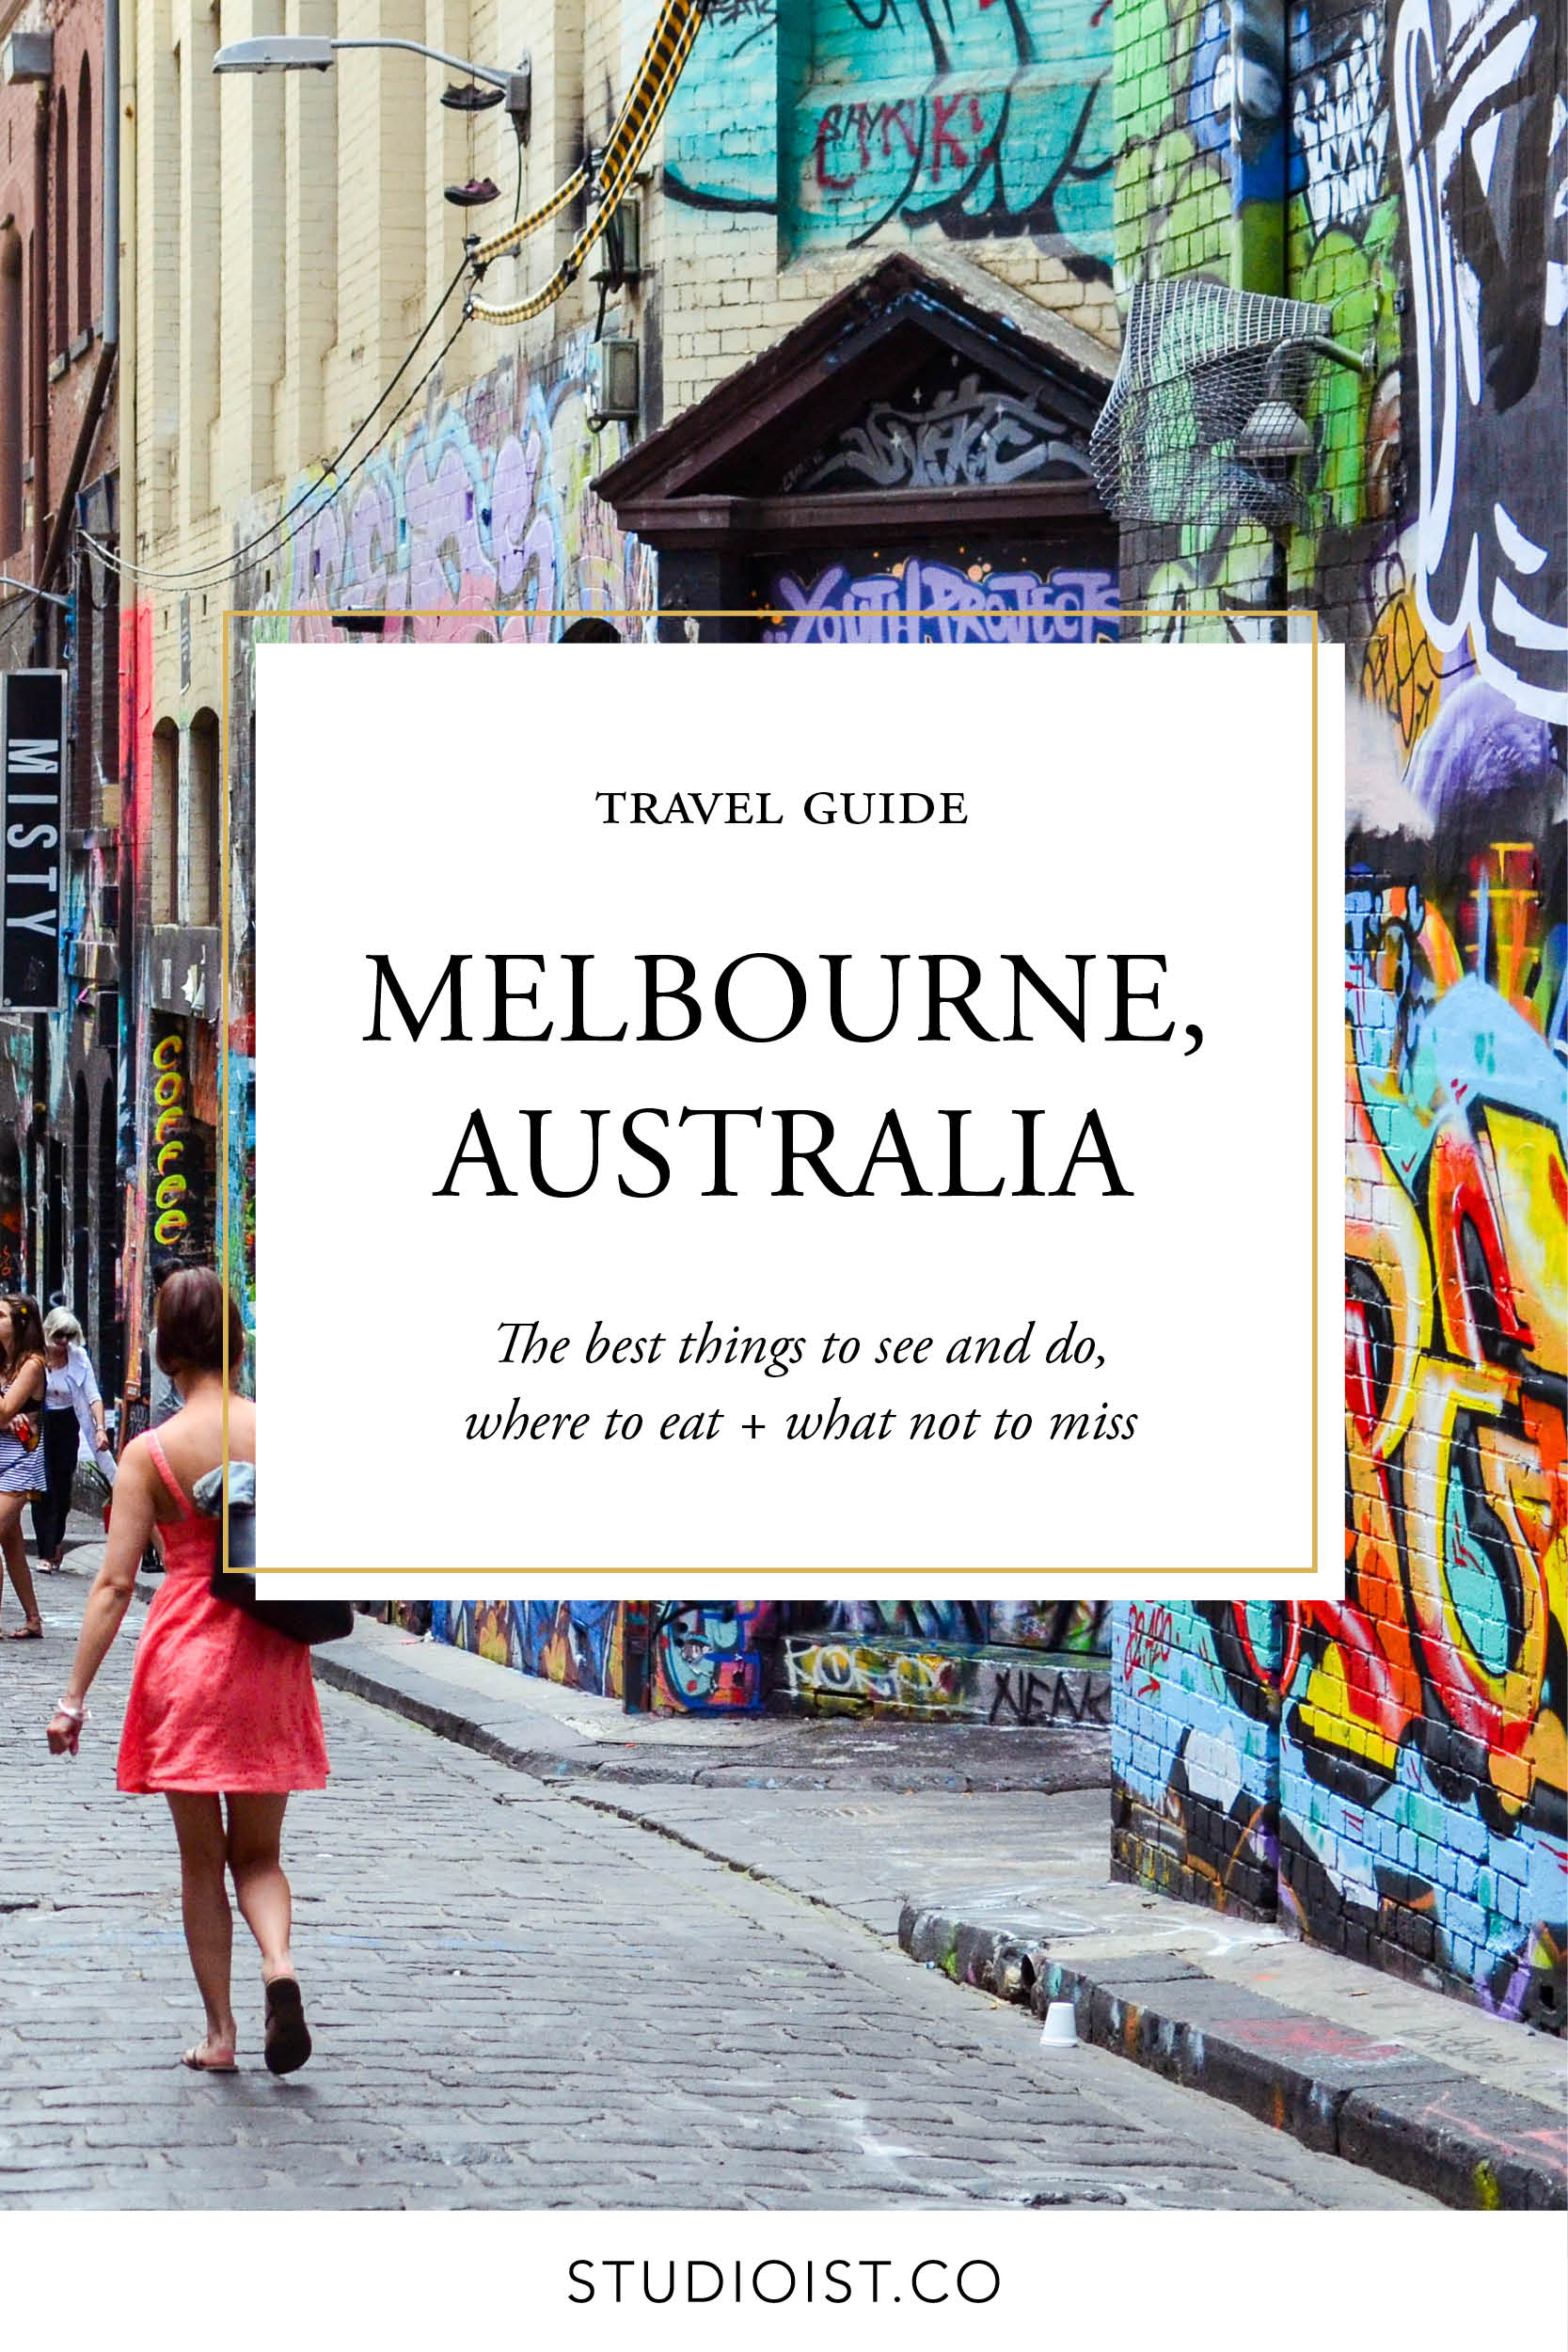 Studioist_Pinterest Design Travel_Melbourne Travel Guide.jpg